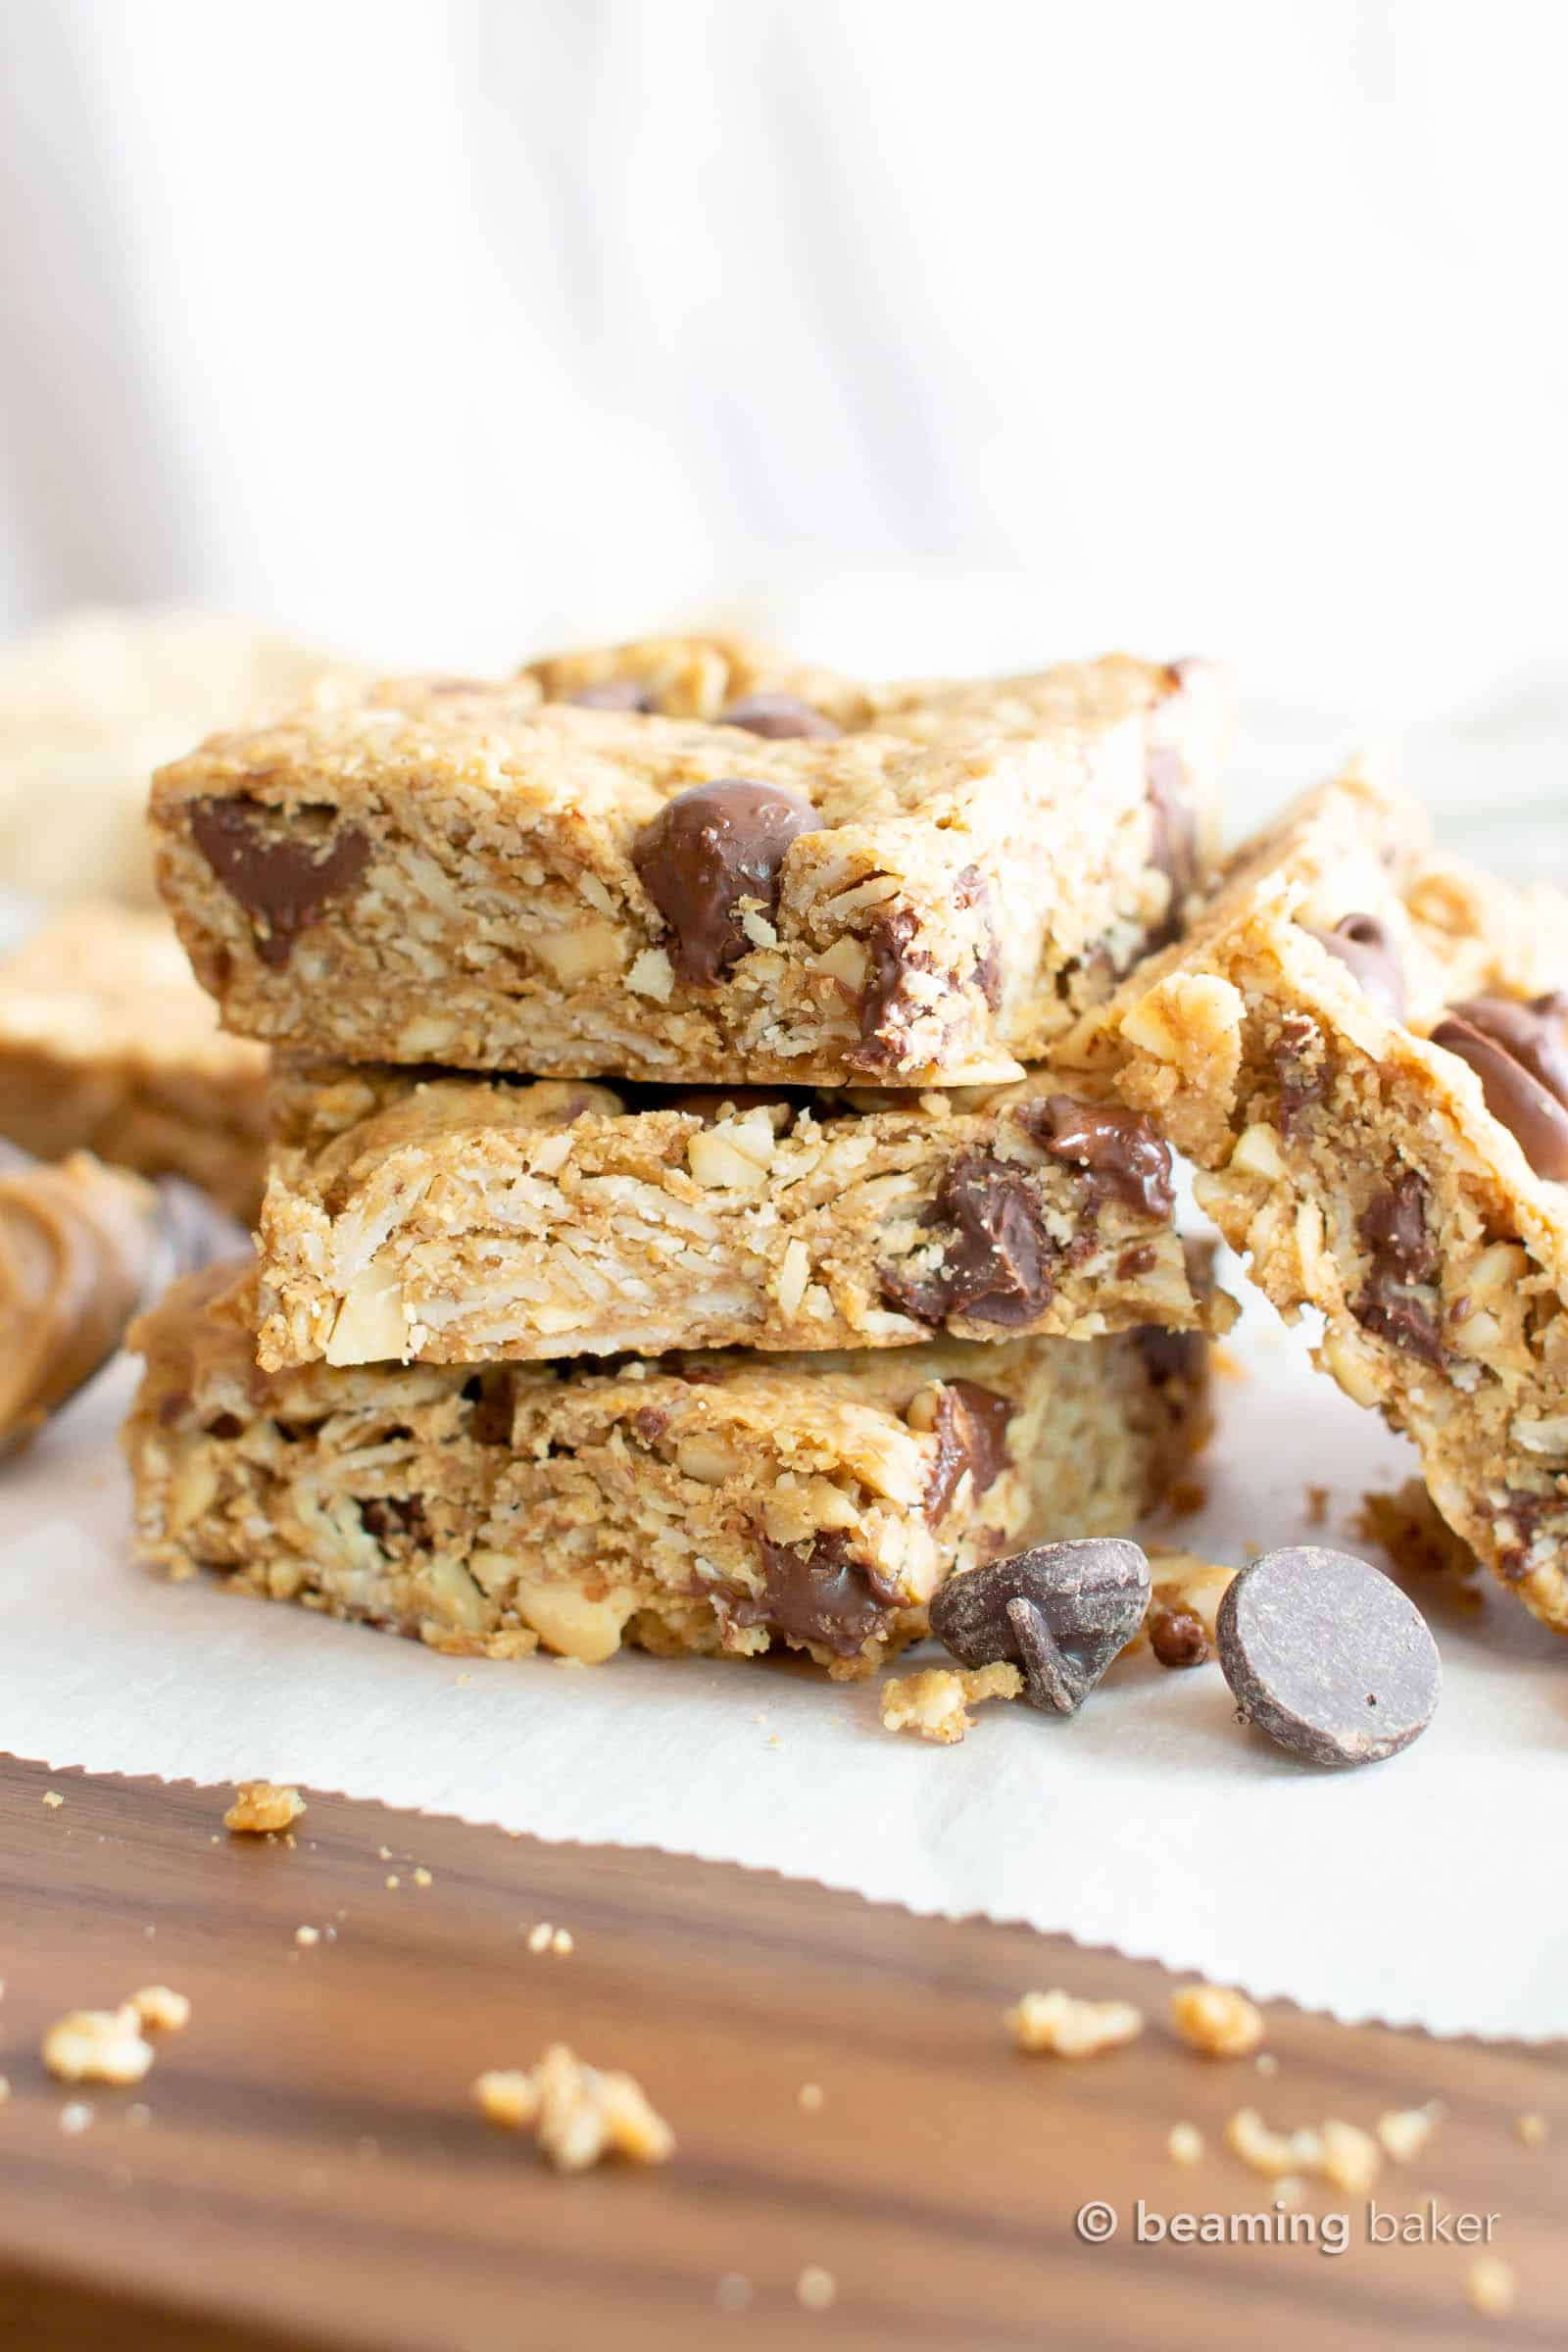 Peanut Butter Chocolate Chip Oatmeal Cookie Bars: this healthy oatmeal cookie bars recipe is packed with creamy peanut butter, fiber-rich oats and plant-based ingredients. Chewy & delicious cookies bars! Vegan, Gluten Free, Dairy-Free. #CookieBars #PeanutButter #Oatmeal #GlutenFree #Vegan | Recipe at BeamingBaker.com